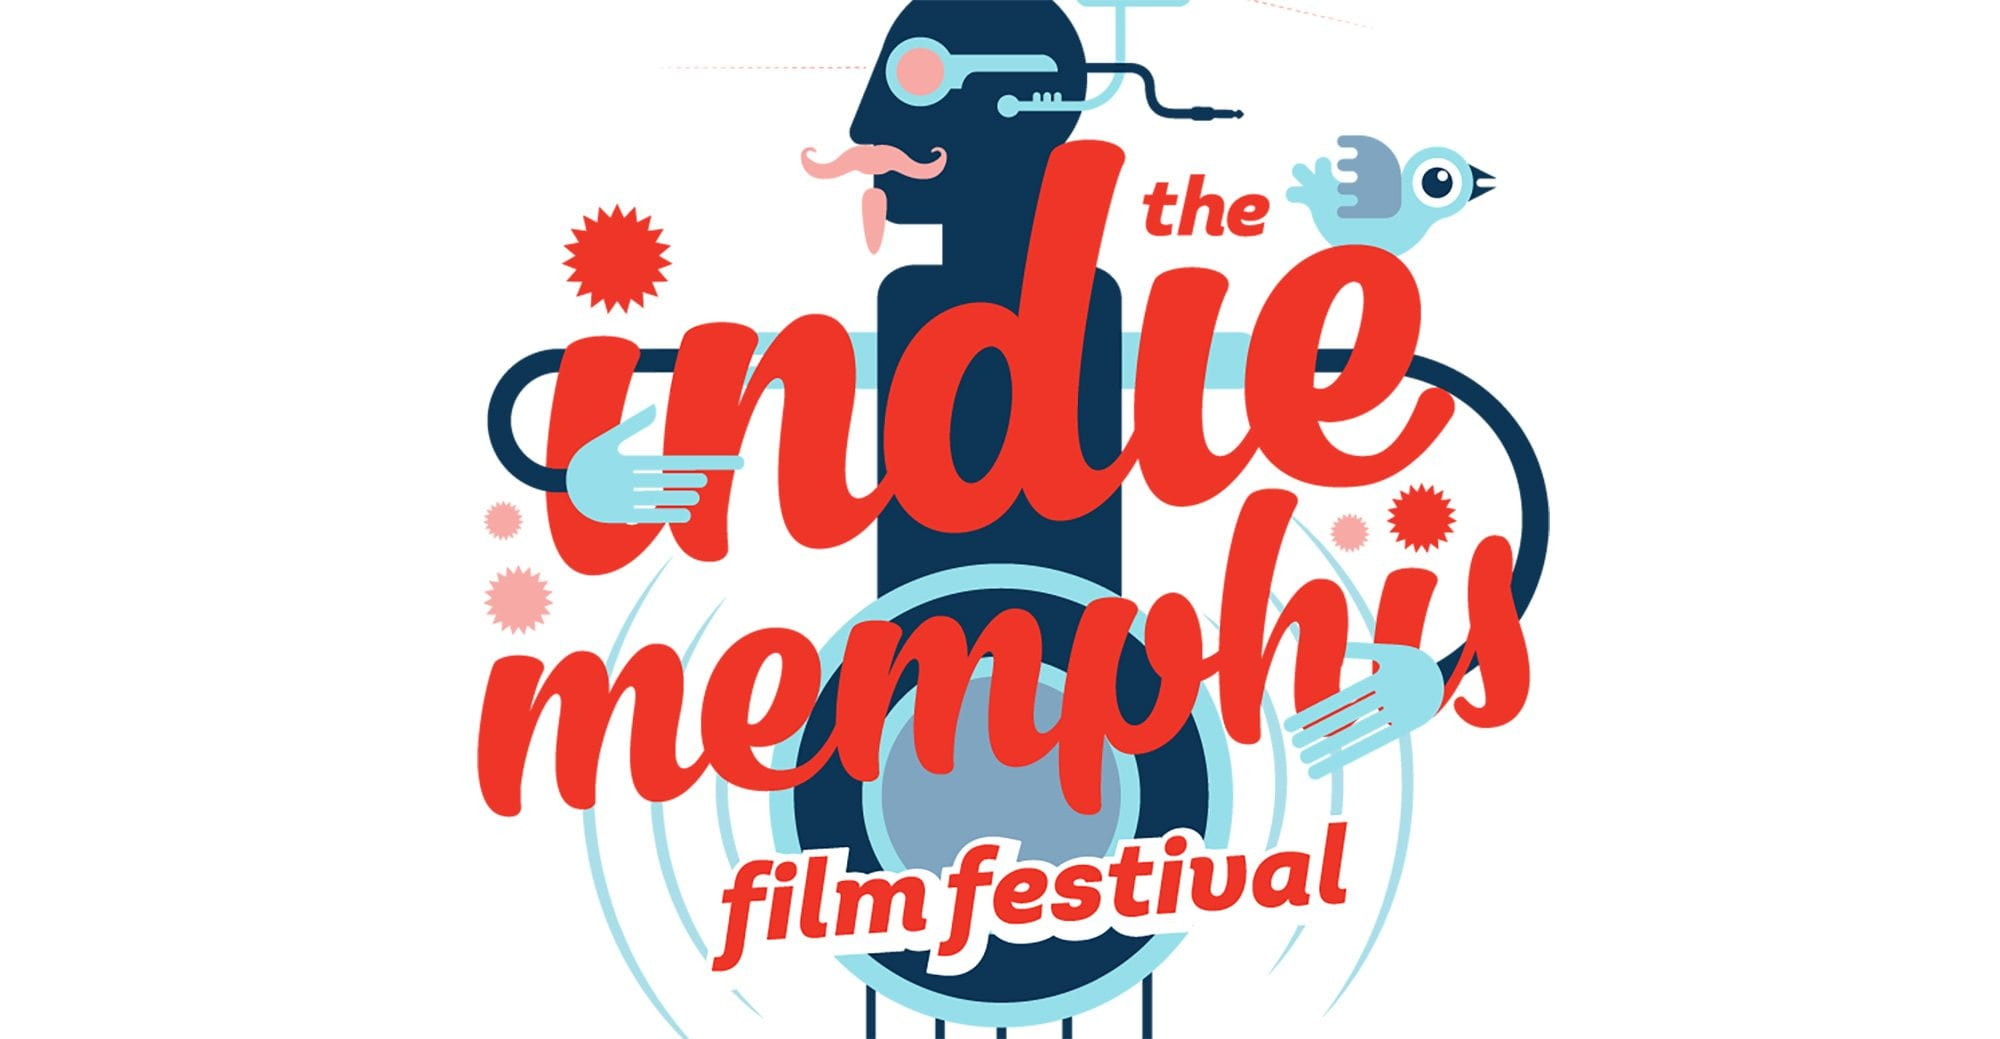 The city of Memphis in Tennessee is famed as the home of the Blues and the birthplace of Rock 'n' Roll, so it's no surprise it makes the perfect creative landscape for one of the city's core art institutions – the Indie Memphis Film Festival.